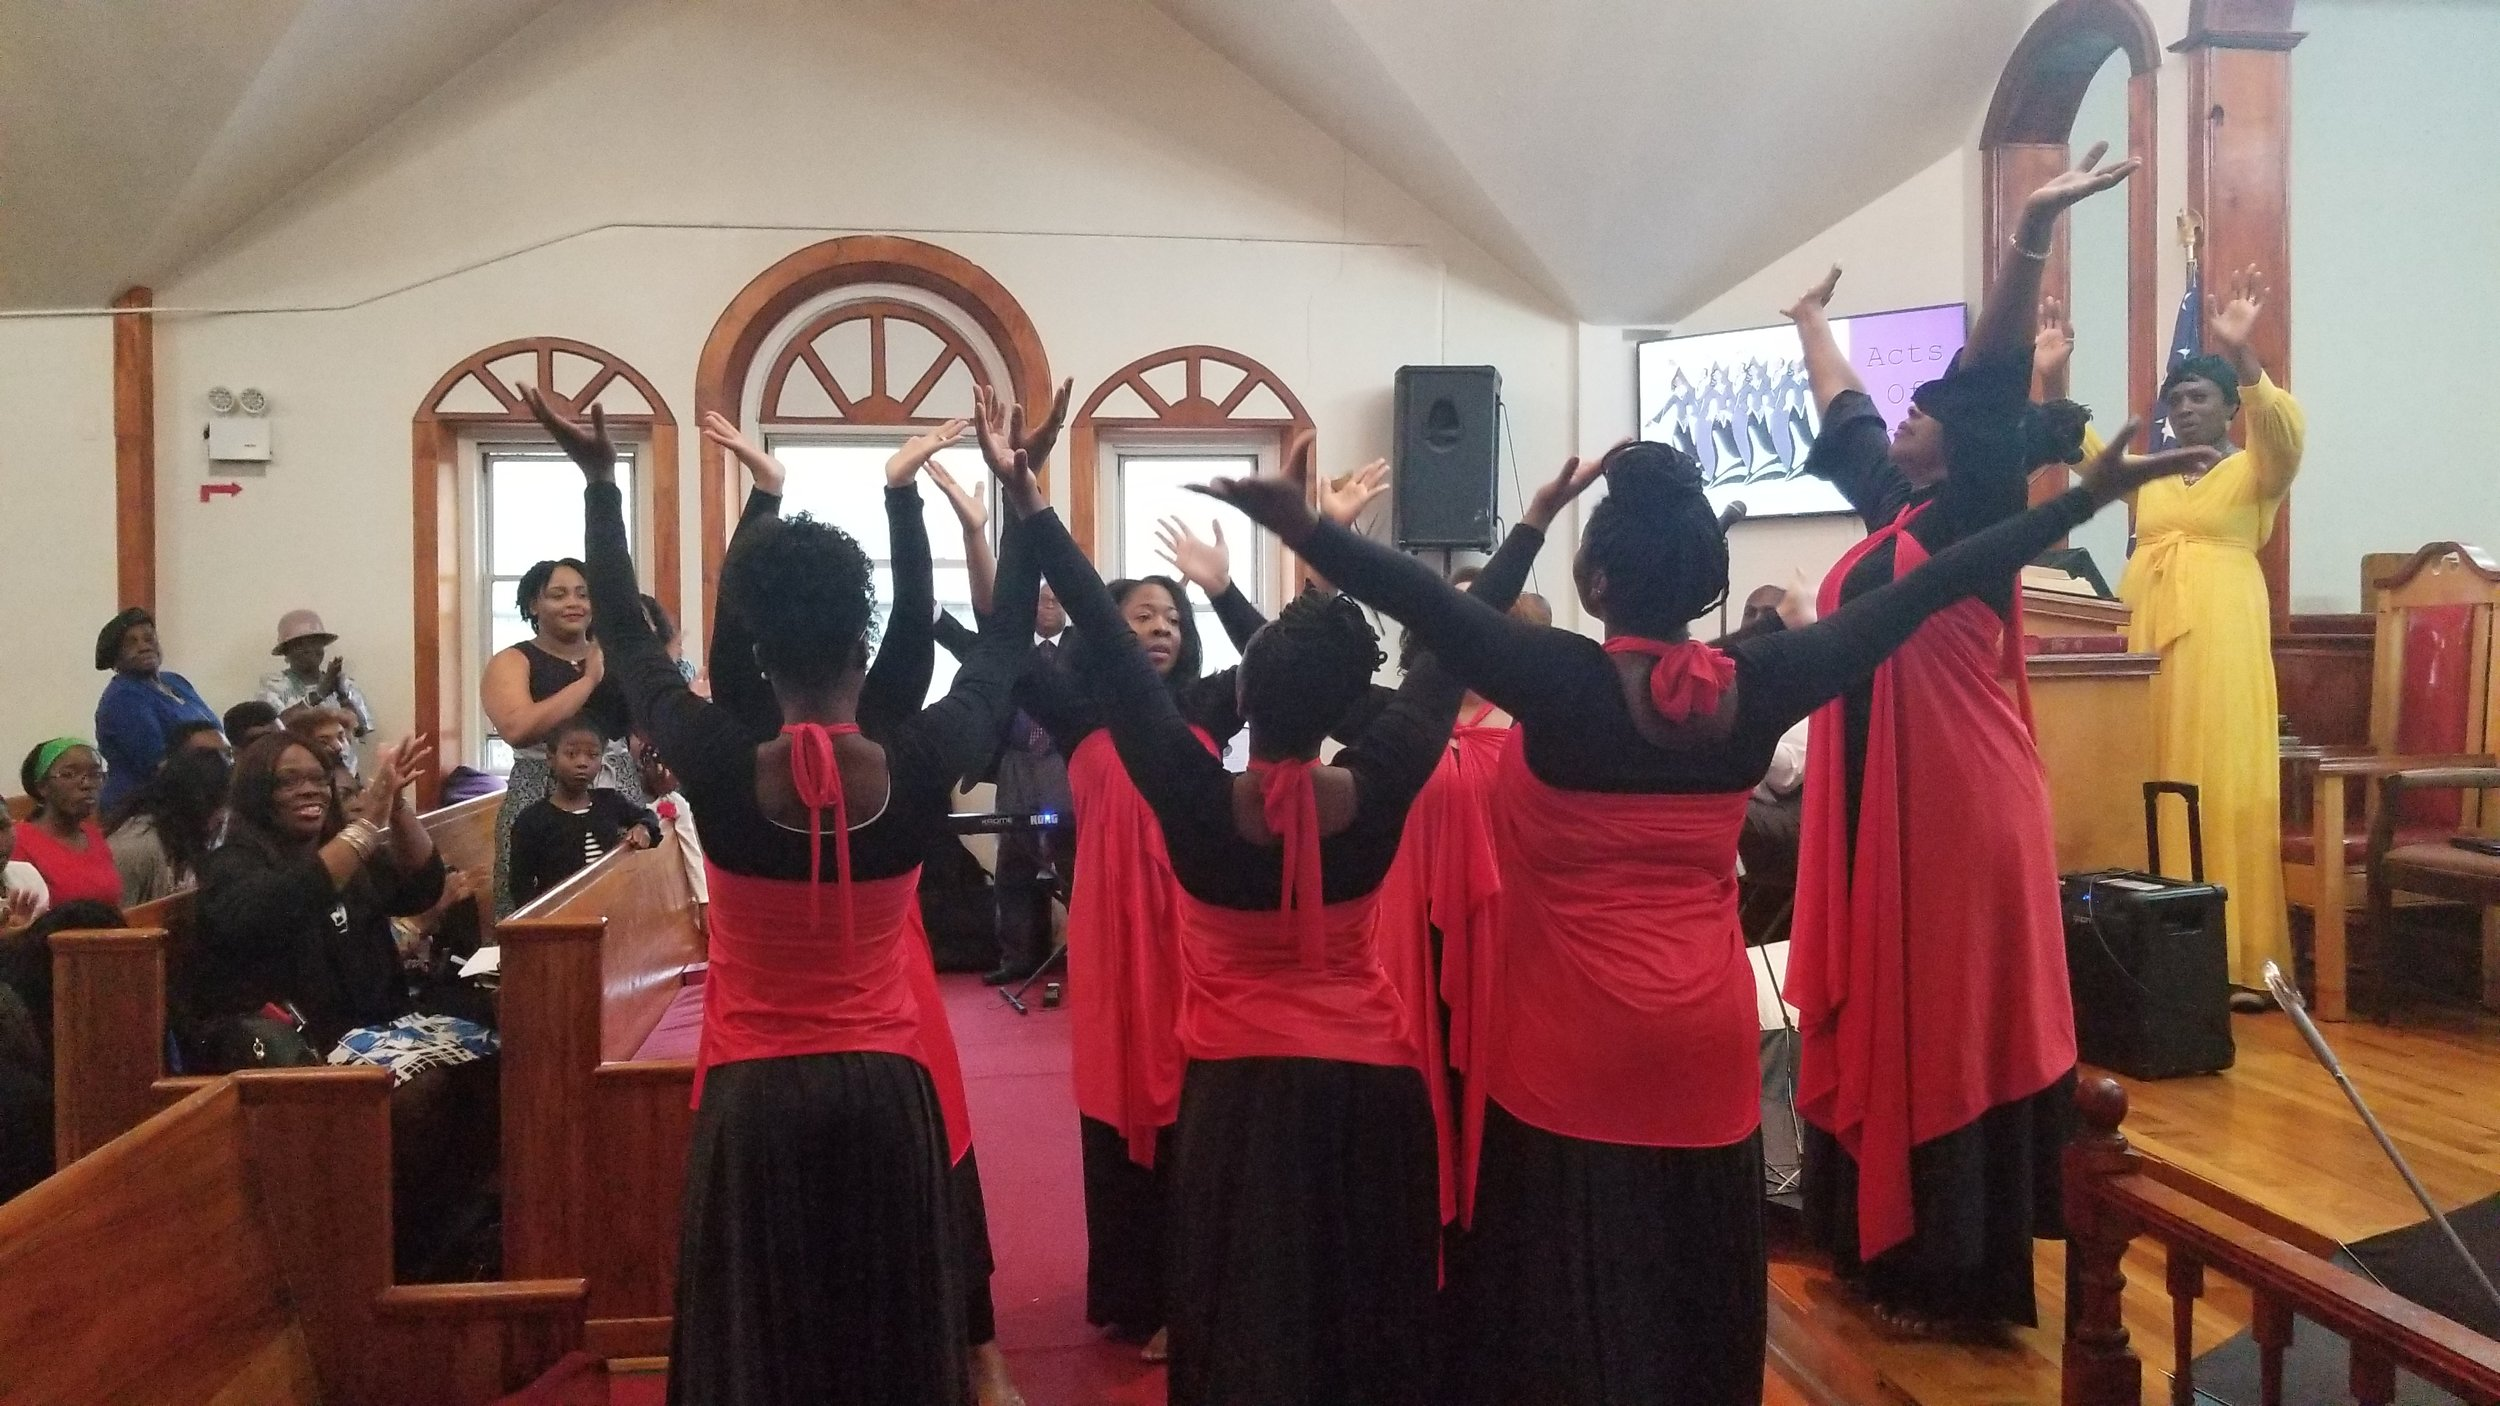 LITURGICAL ARTS - Liturgical dance is a choreographed dance that is an expression of worship and is sometimes incorporated into the service. You do not need any training to join this ministry.